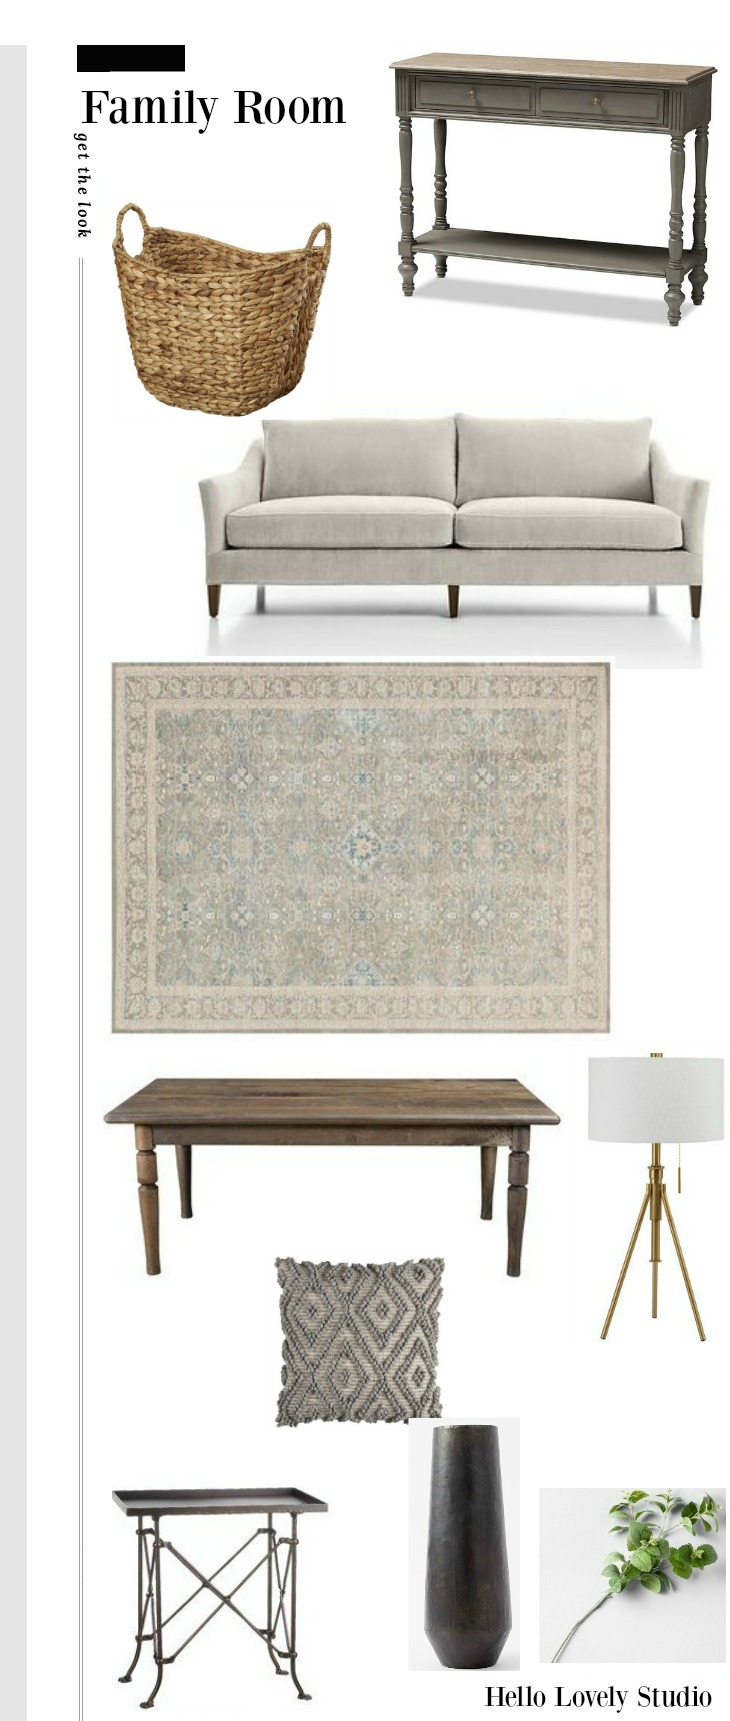 Fixer Upper The Club House Family Room Get the Look Mood Board - Hello Lovely Studio.